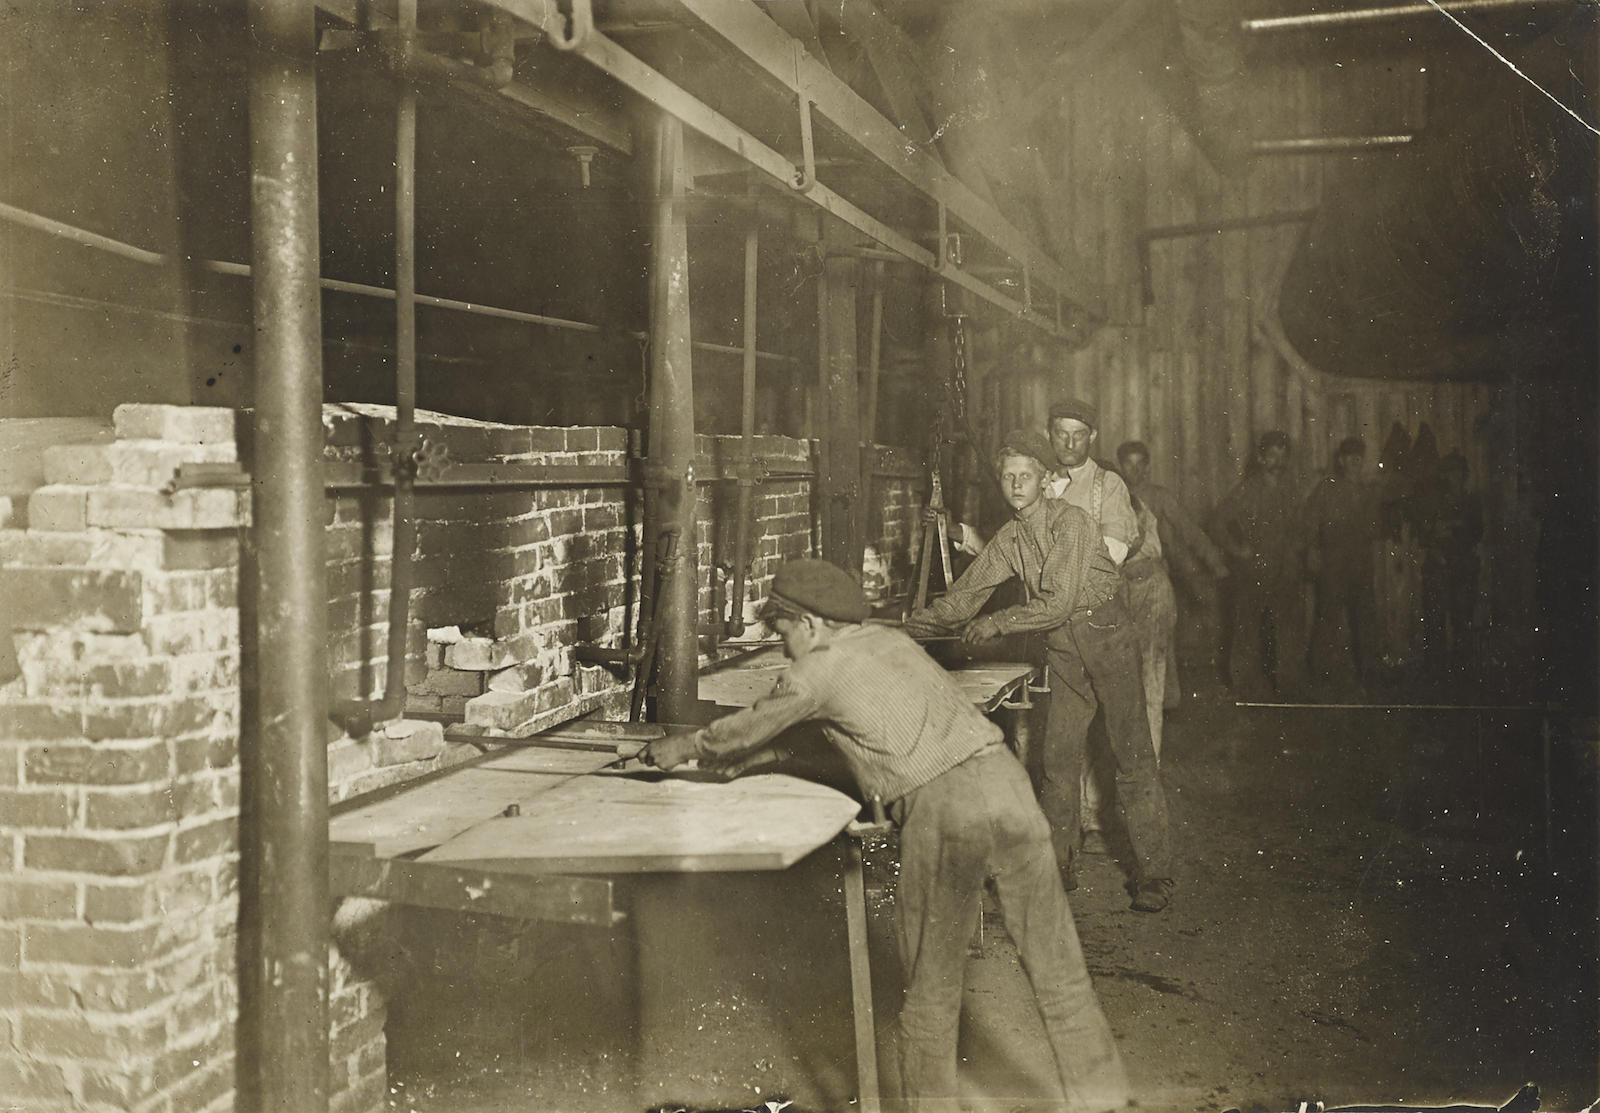 Lewis Wickes Hine-The Carrying-In Boys, Midnight At An Indiana Glass Works-1908